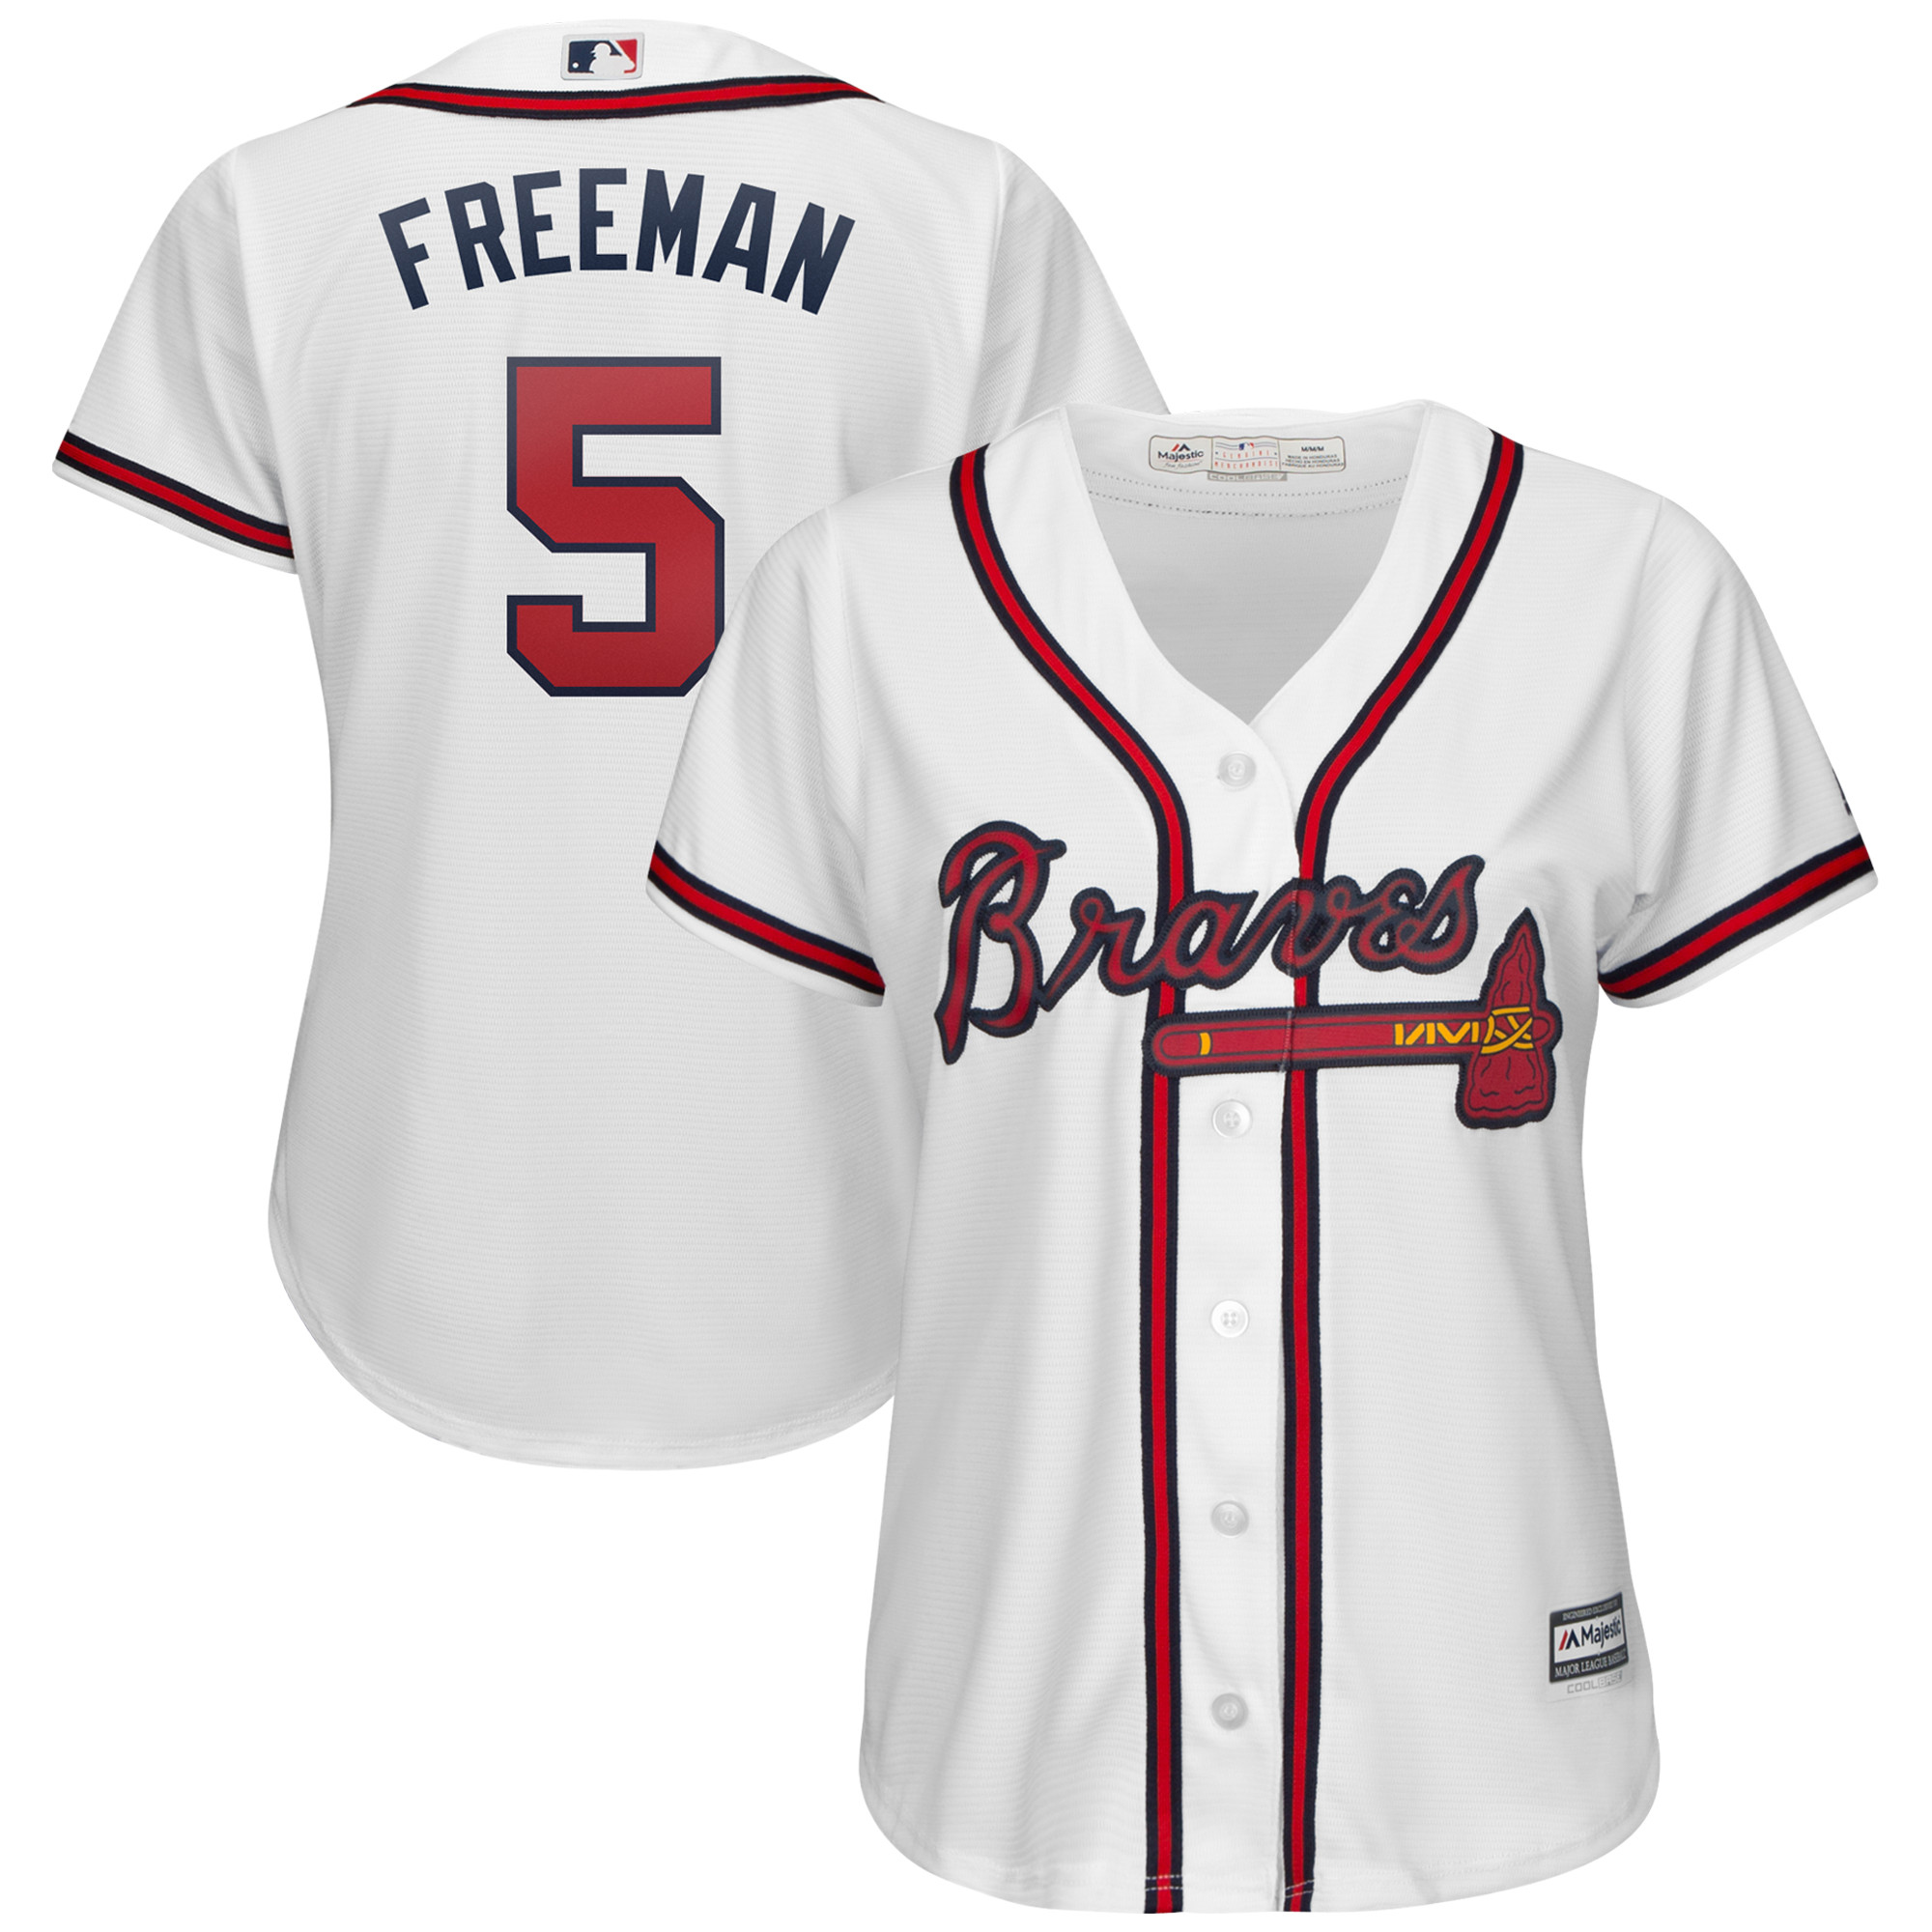 Freddie Freeman Atlanta Braves Majestic Women's 2019 Home Cool Base Player Jersey - White